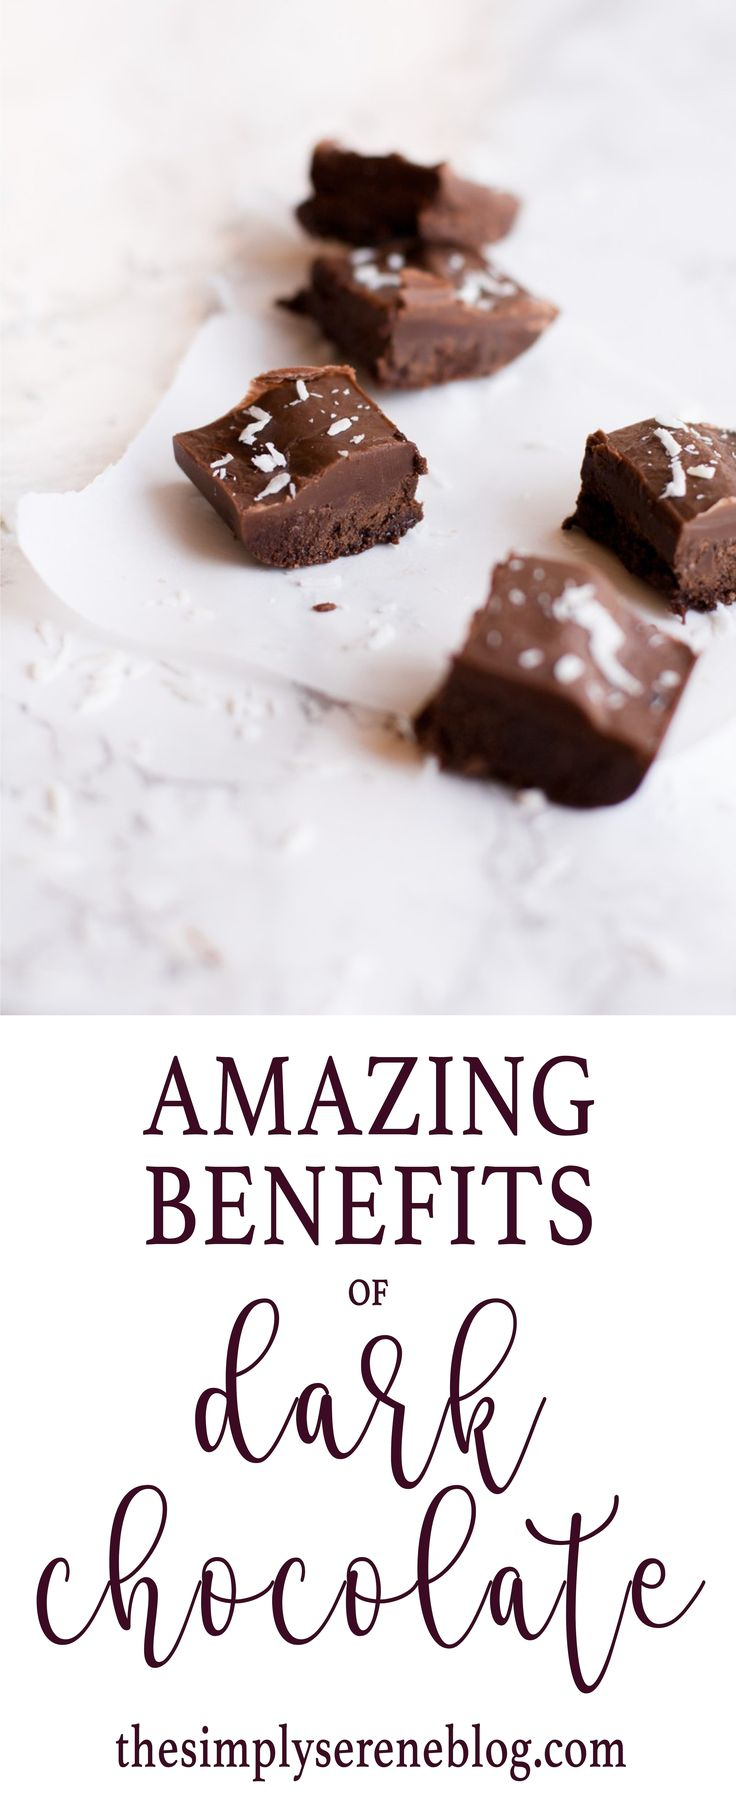 Amazing benefits of dark chocolate | Cocoa is an antioxidant